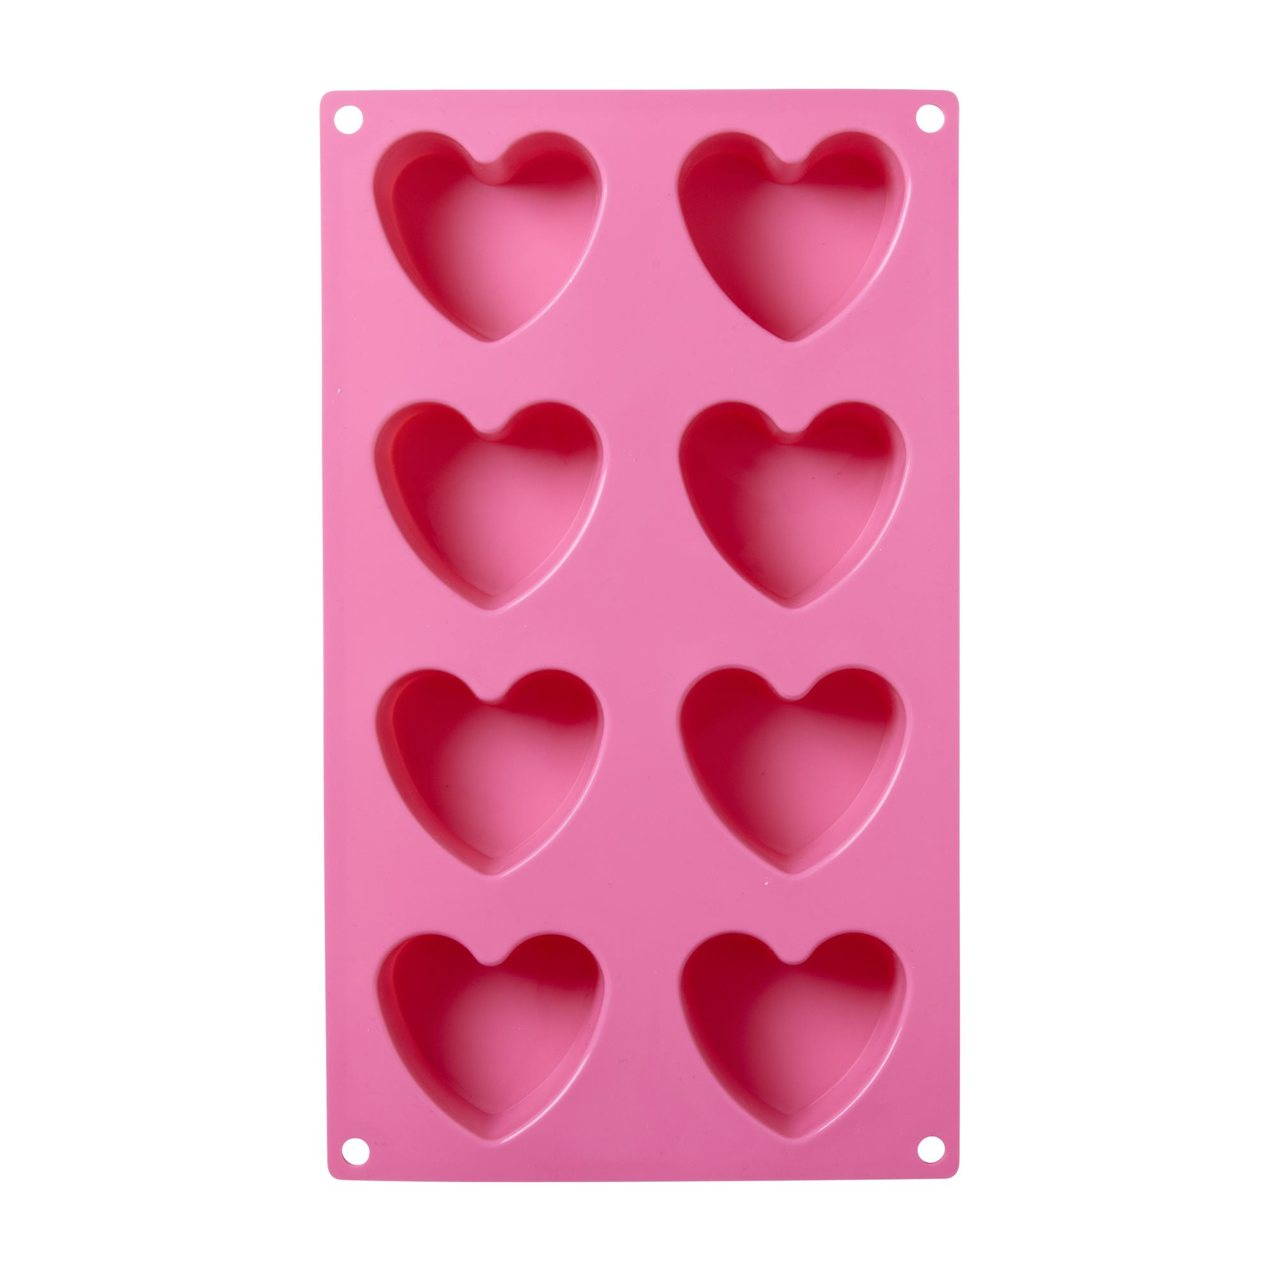 Heart Shaped Silicon Baking Mold in Pink